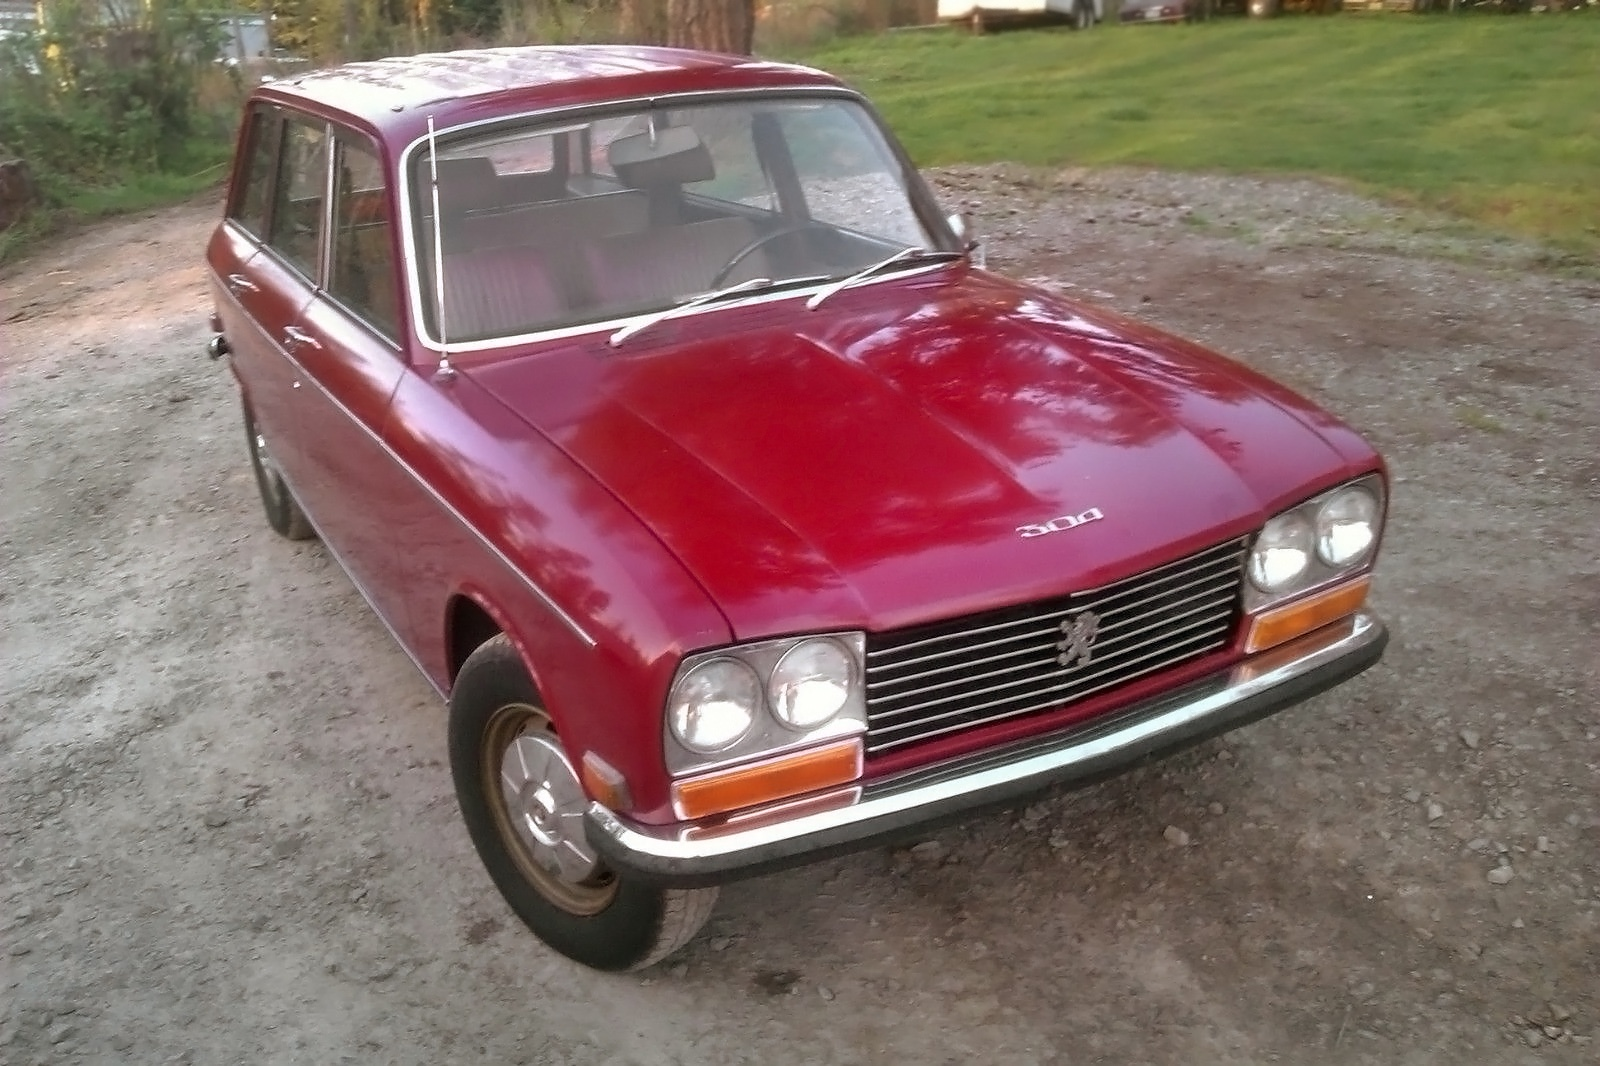 Little Red Wagon 1971 Peugeot 304 Wagon